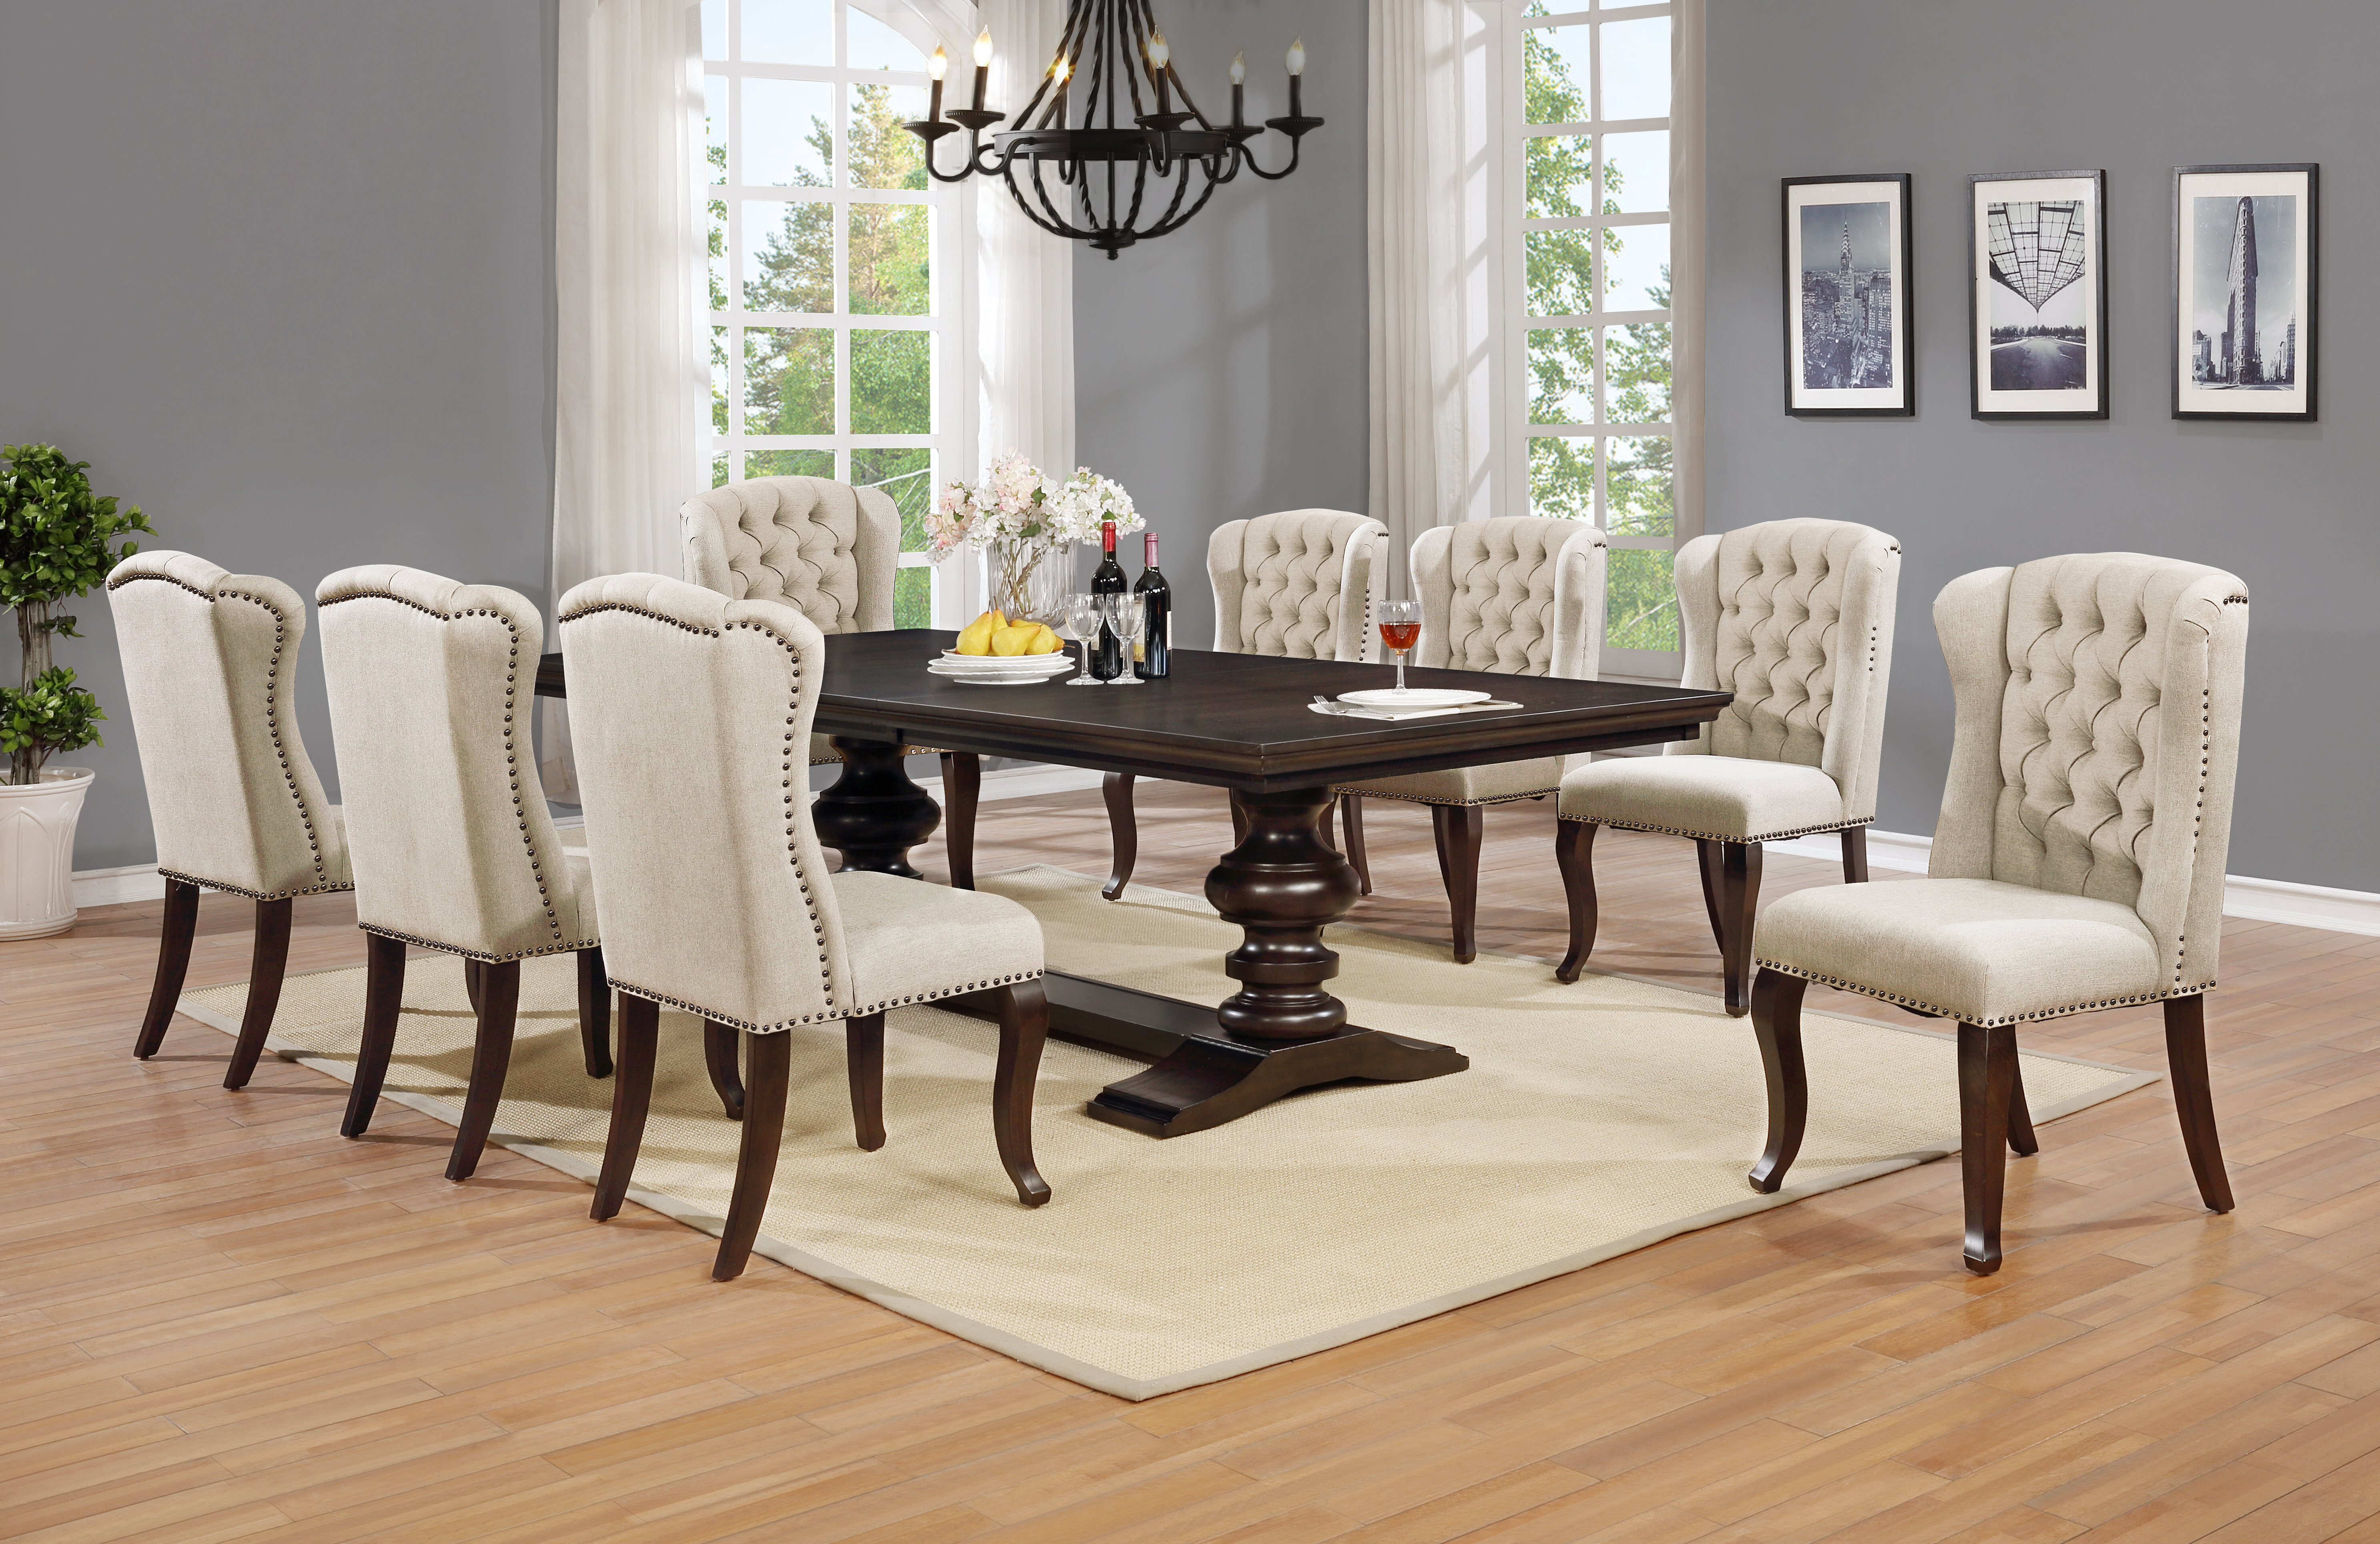 wayfair extending dining table and chairs Off 9   www ...